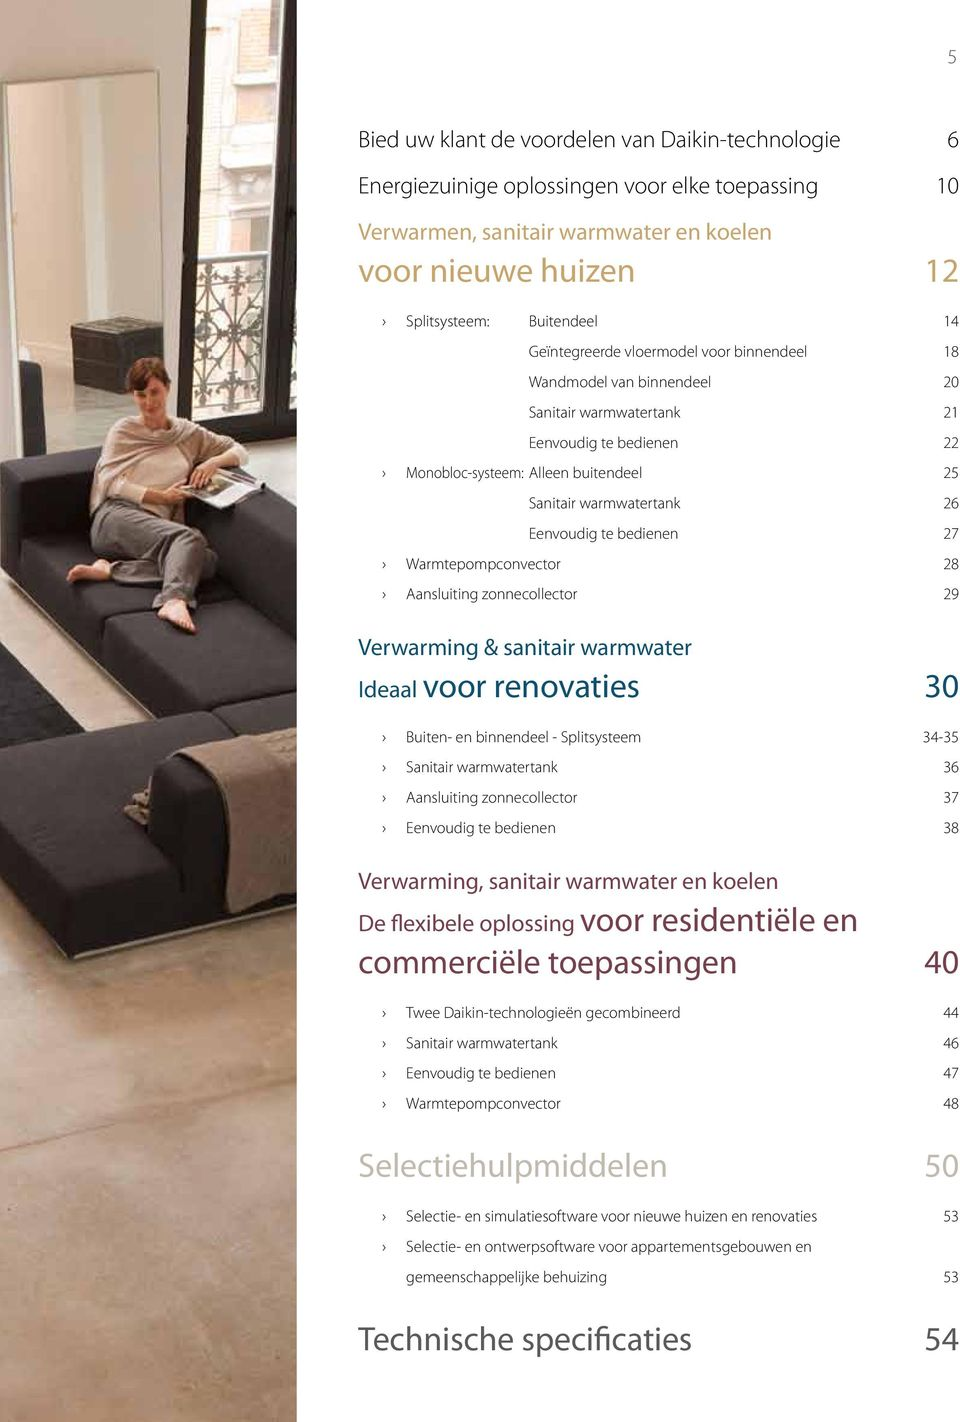 te bedienen 27 Warmtepompconvector 28 Aansluiting zonnecollector 29 Verwarming & sanitair warmwater Ideaal voor renovaties 30 Buiten- en binnendeel - Splitsysteem 34-35 Sanitair warmwatertank 36